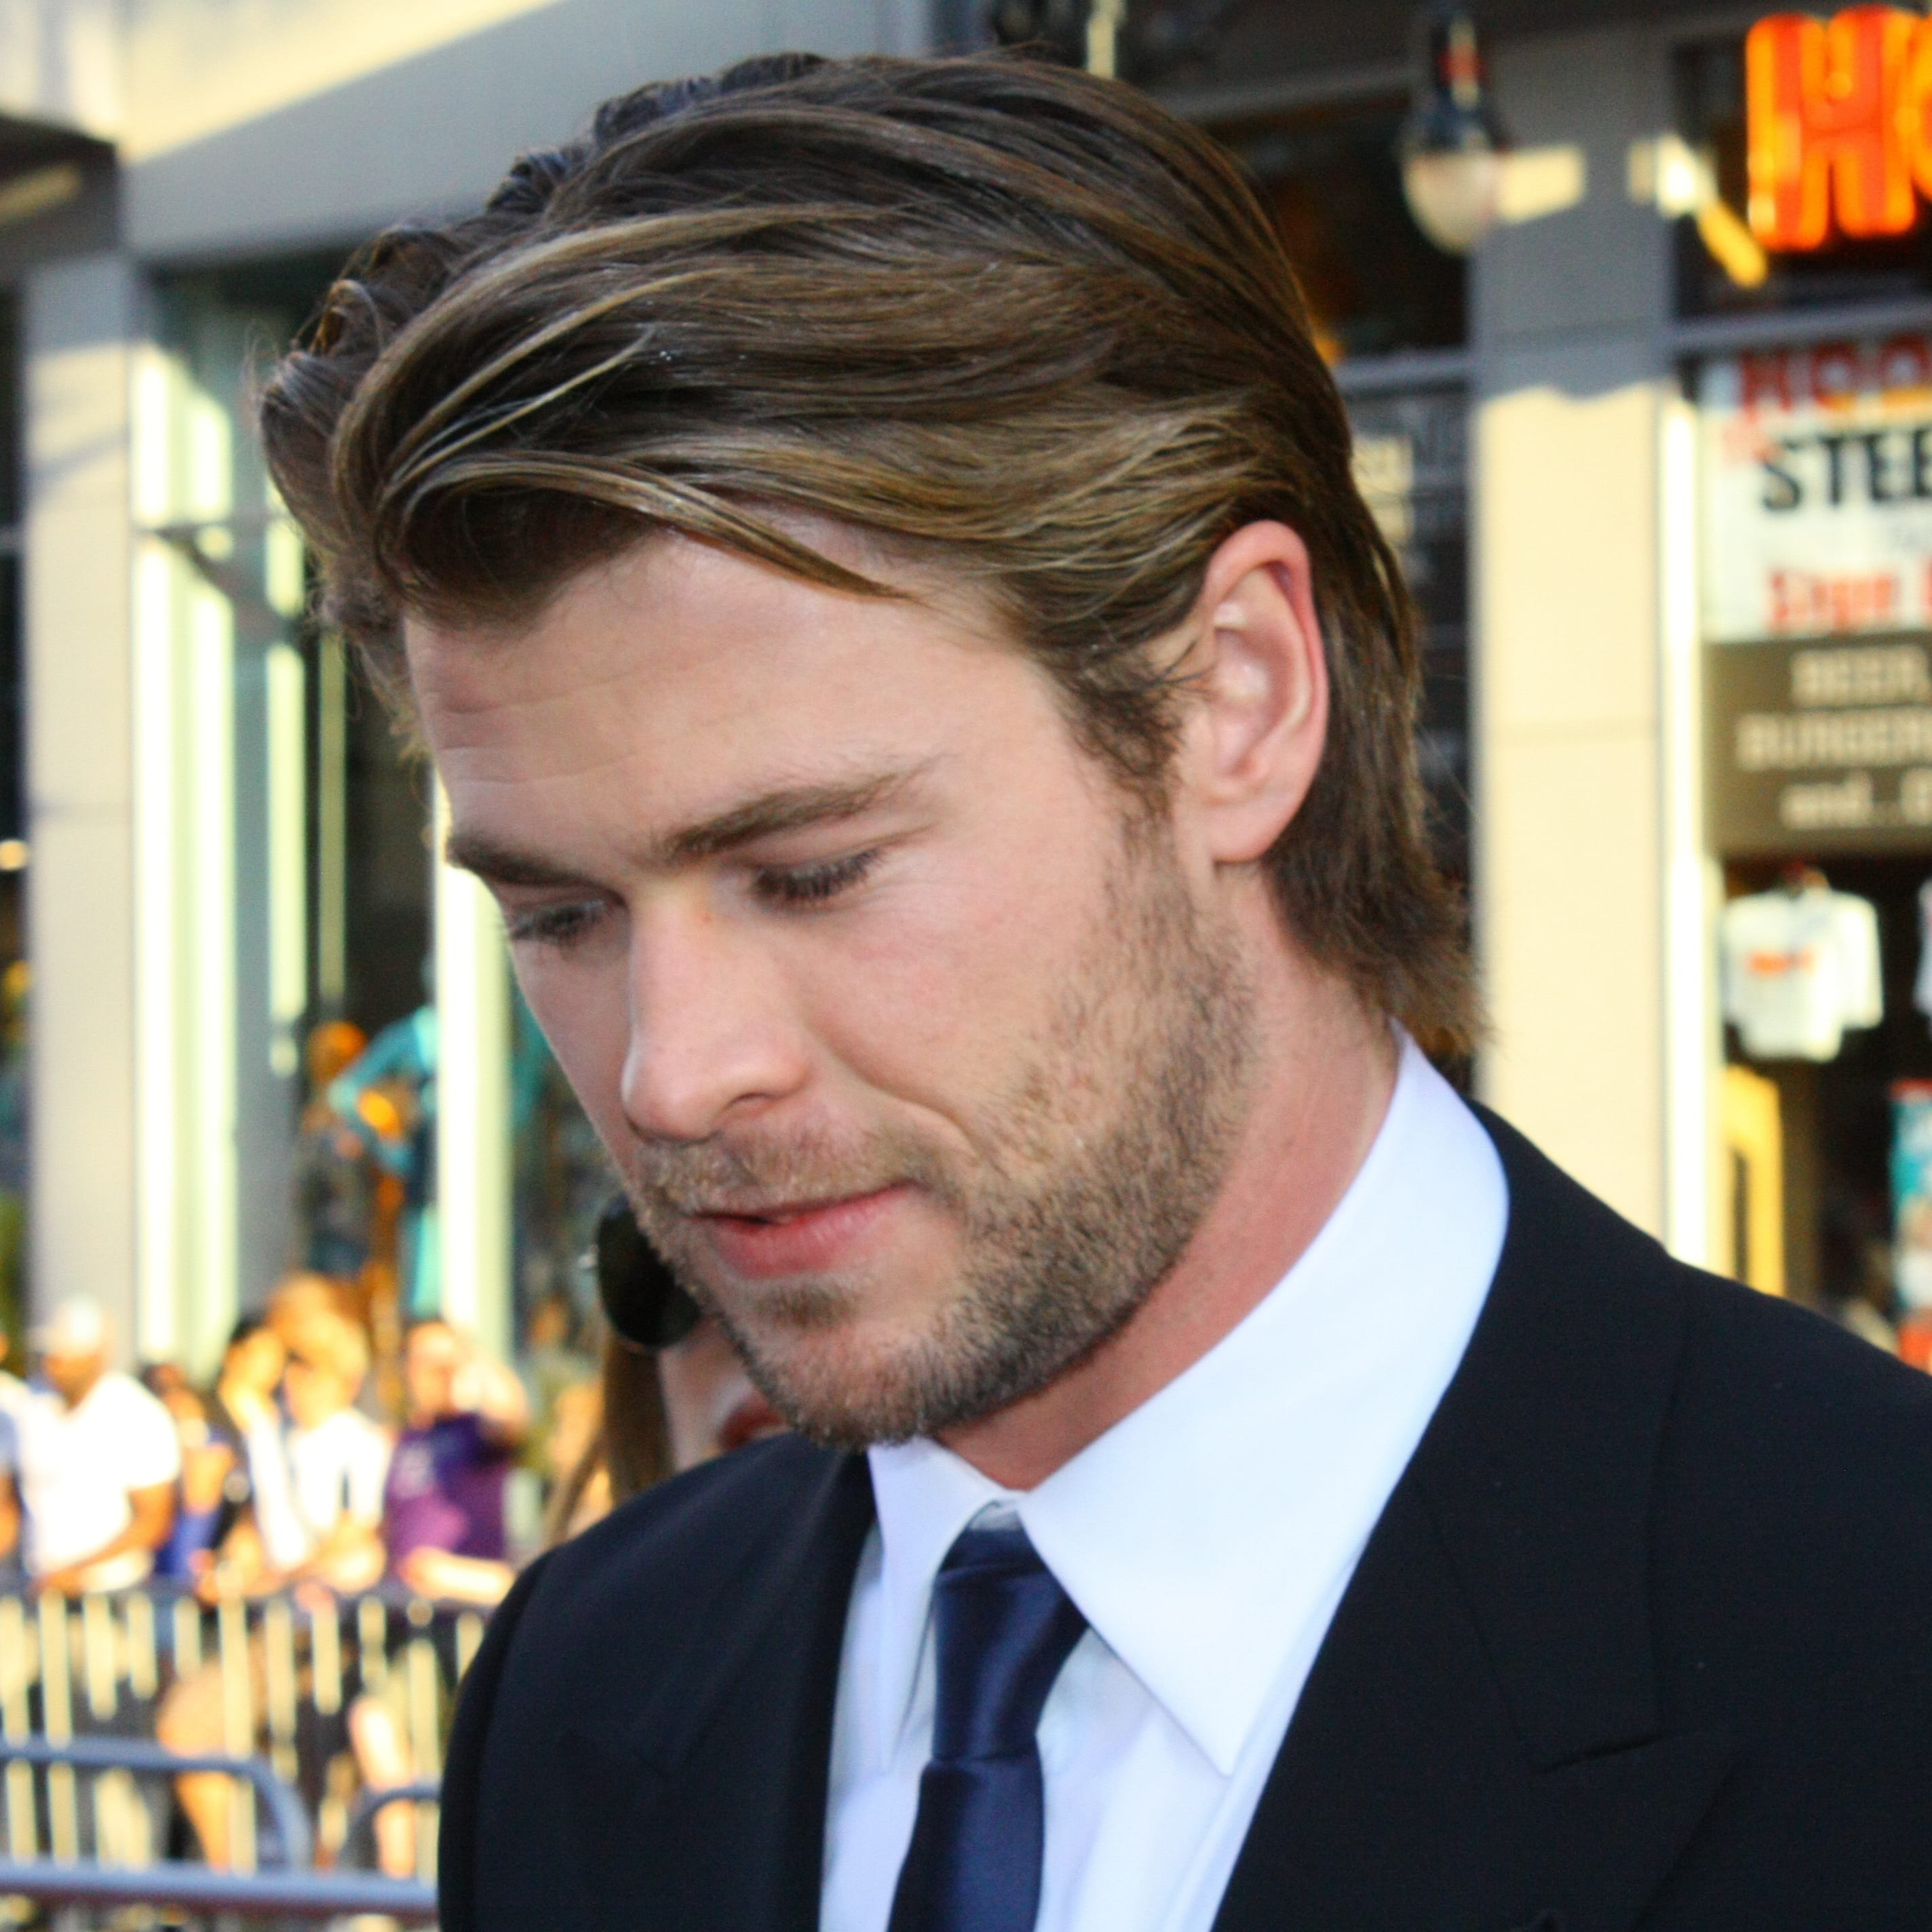 Chris Hemsworth's Ear Tuck